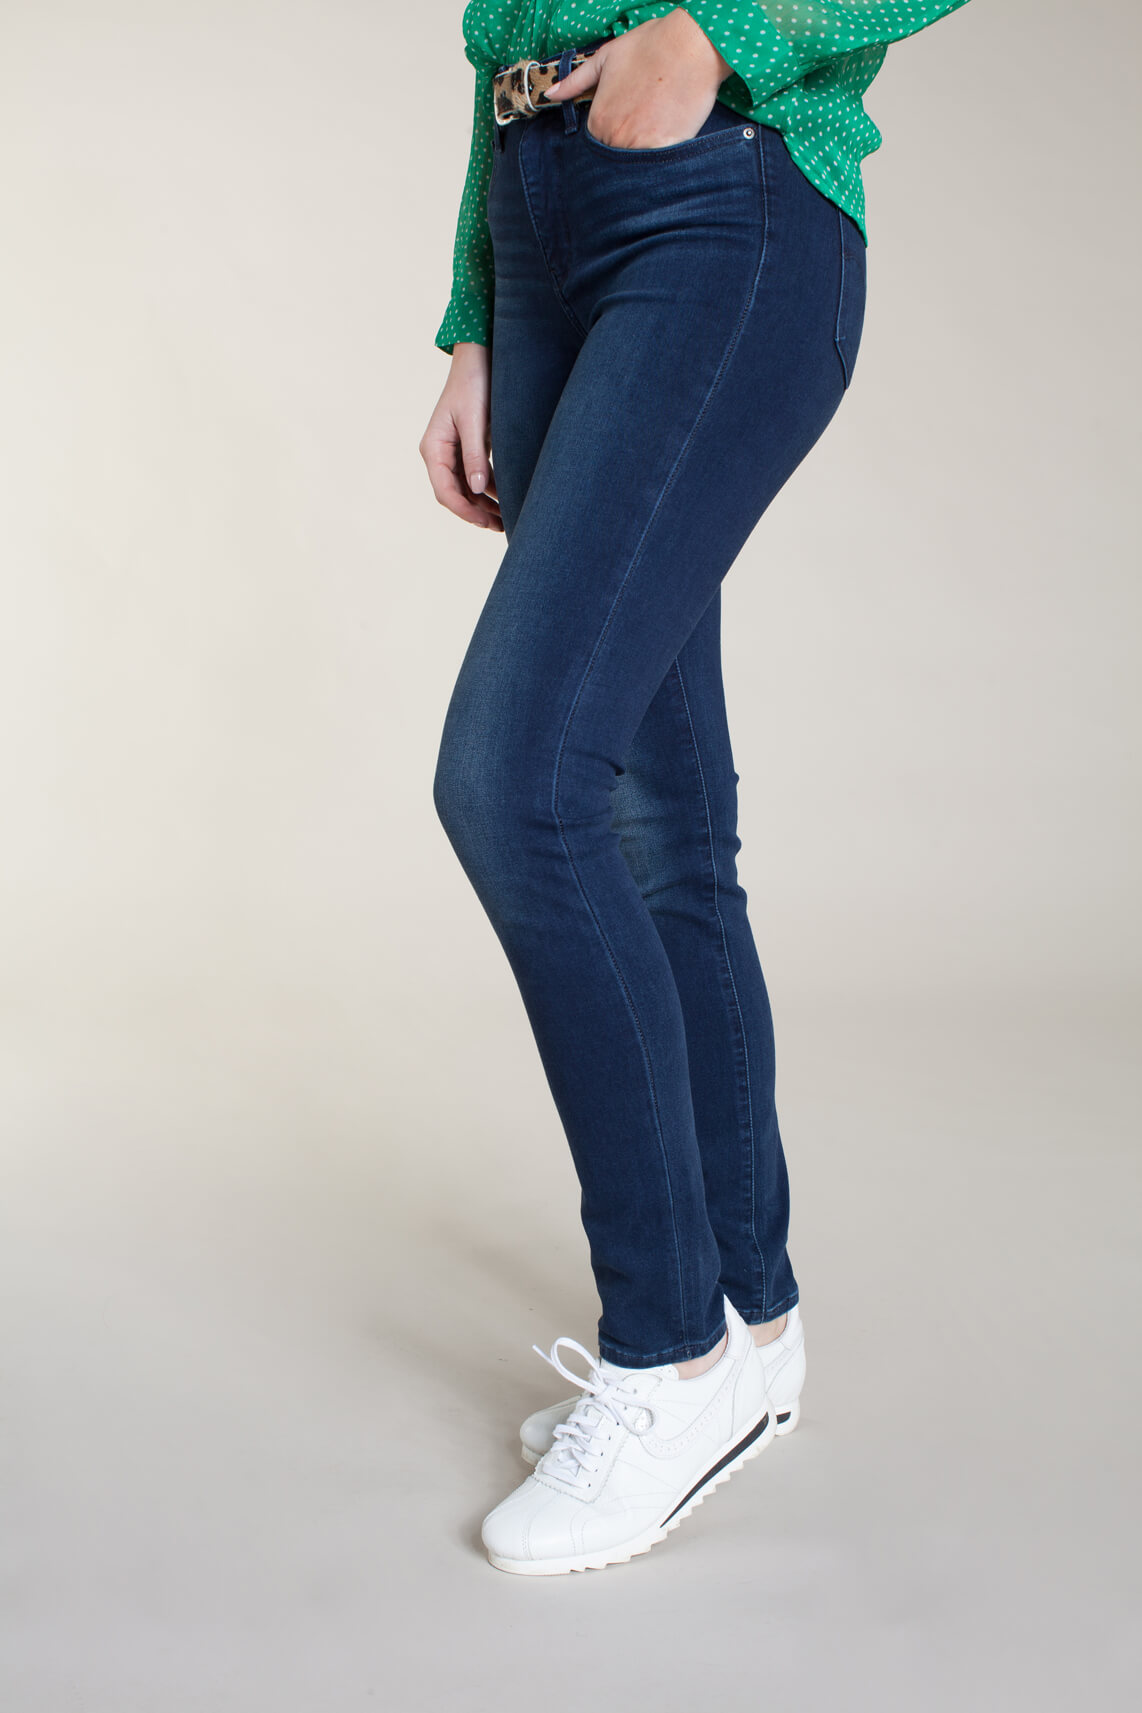 Levi's Dames 311 L30 shaping skinny jeans Blauw